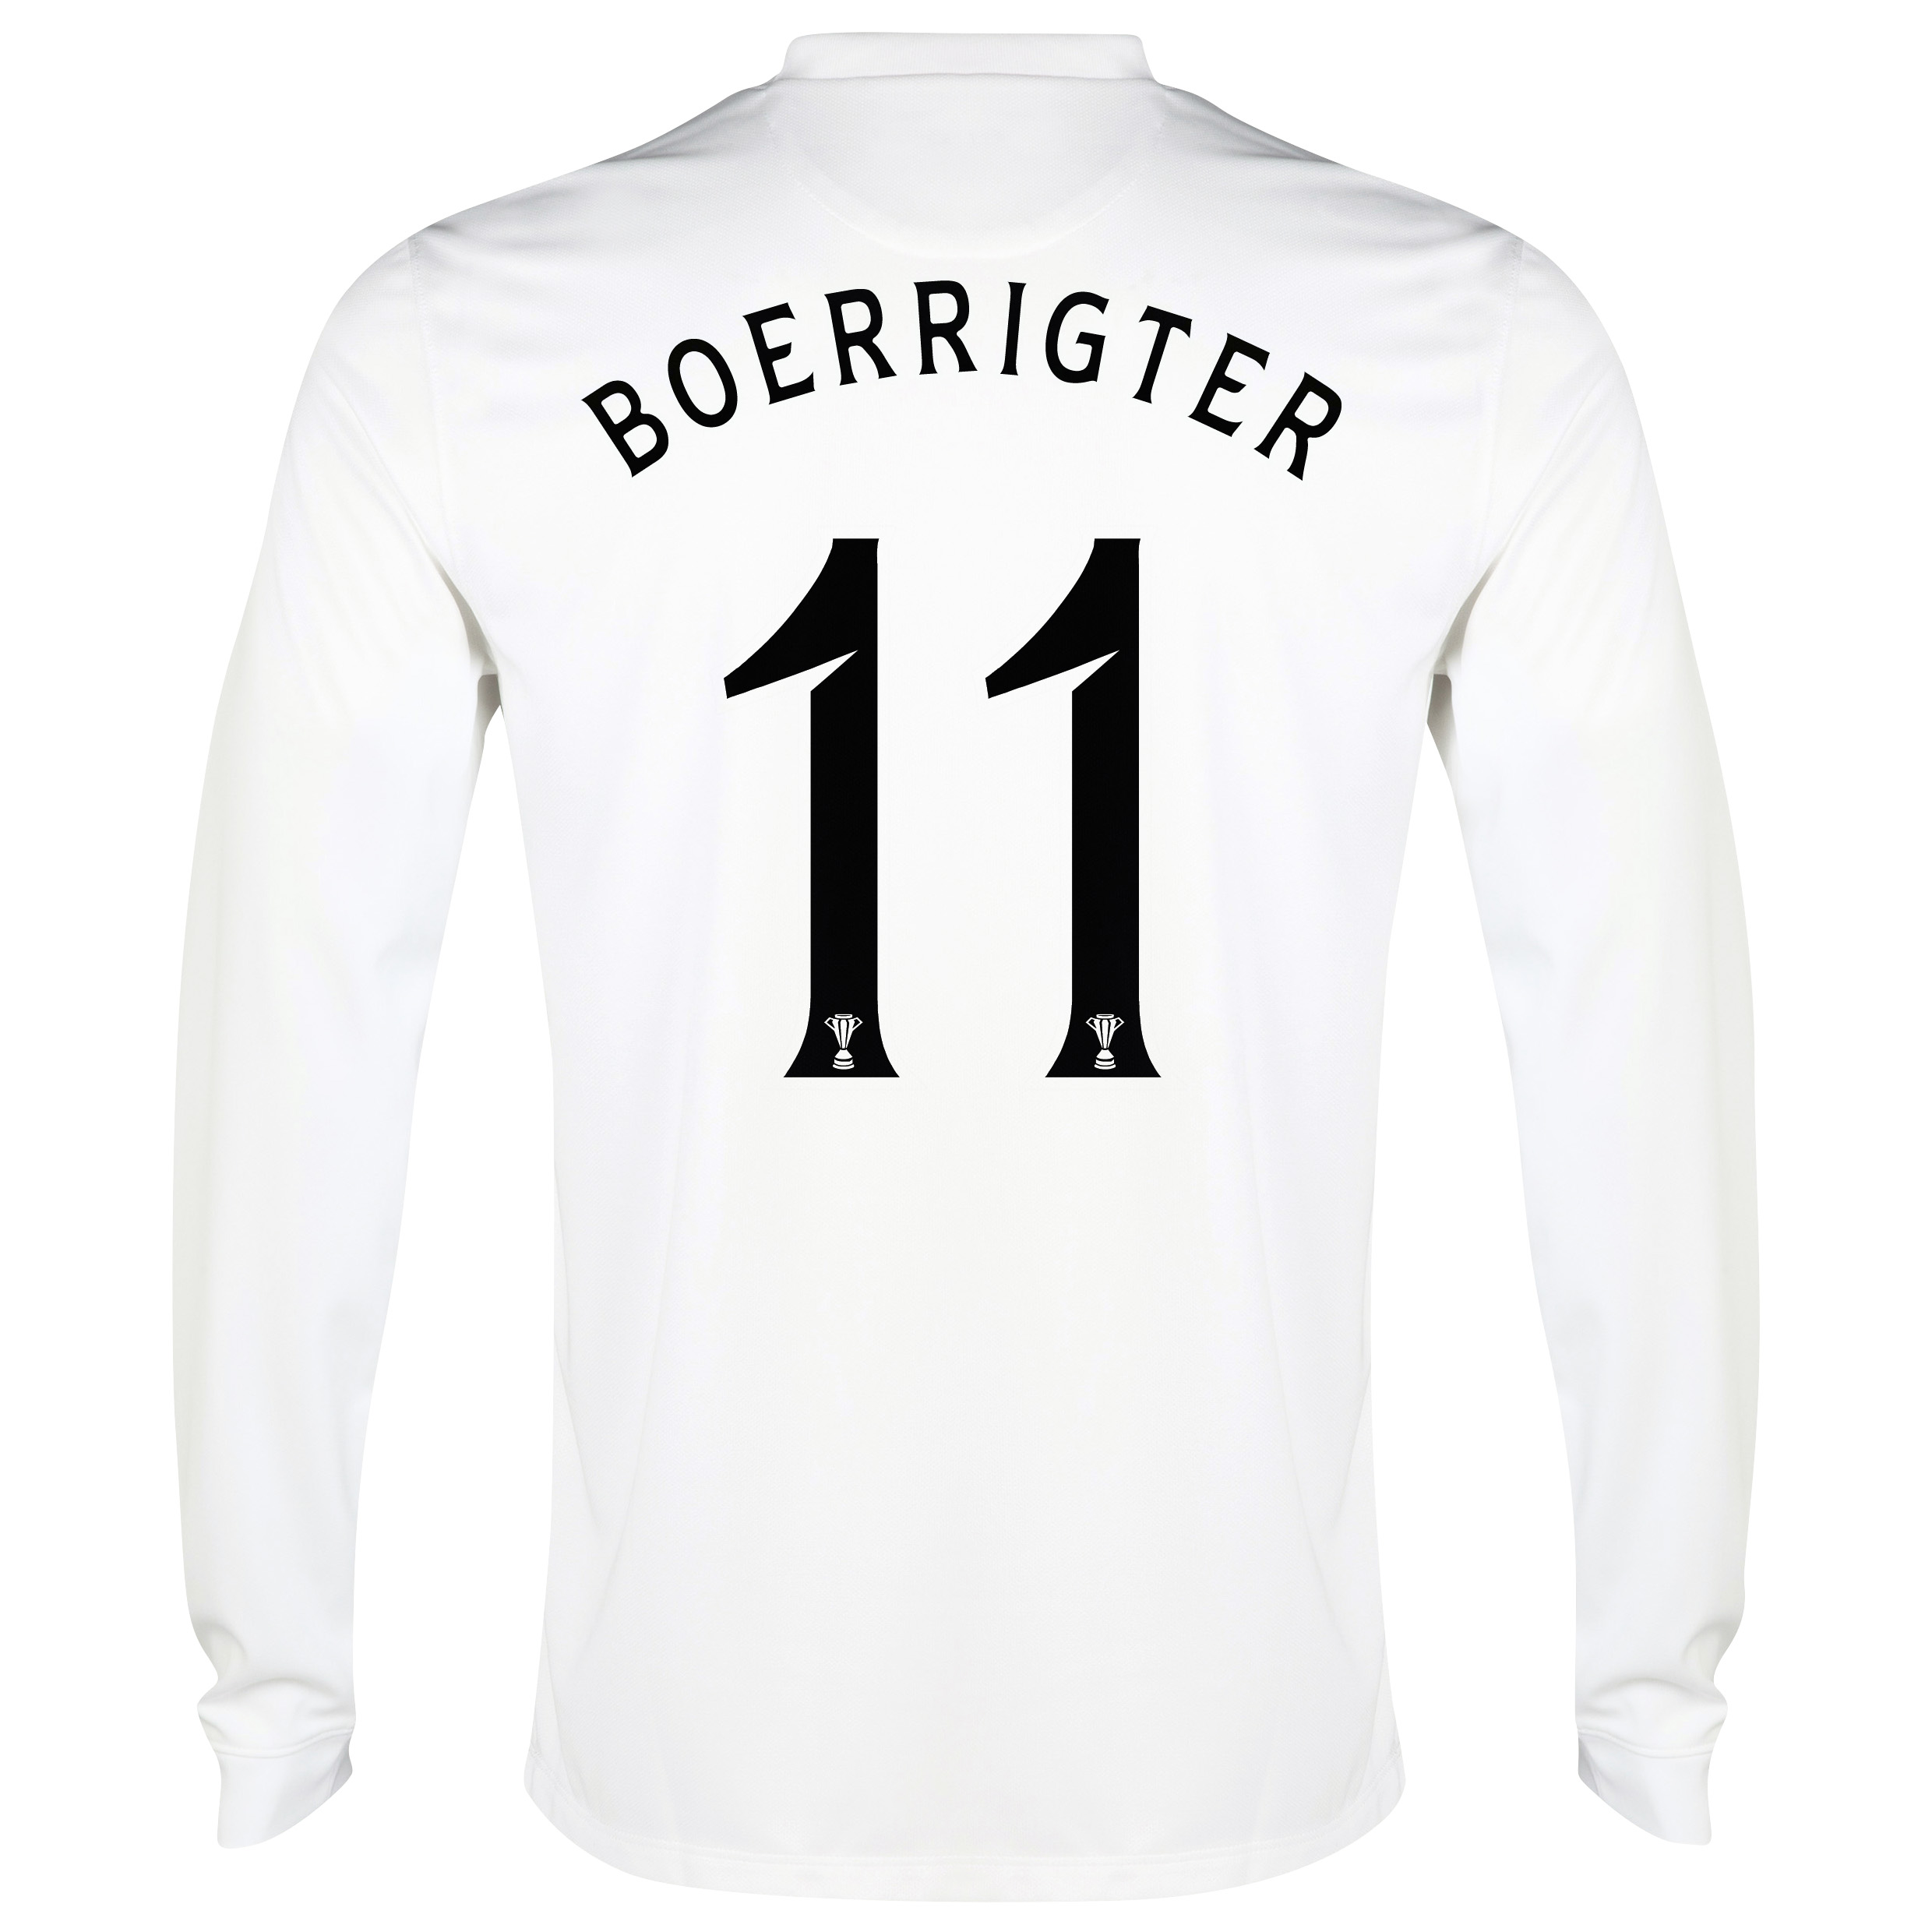 Celtic 3rd Shirt 2014/15 - Long Sleeved - Unsponsored White with Boerrigter 11 printing